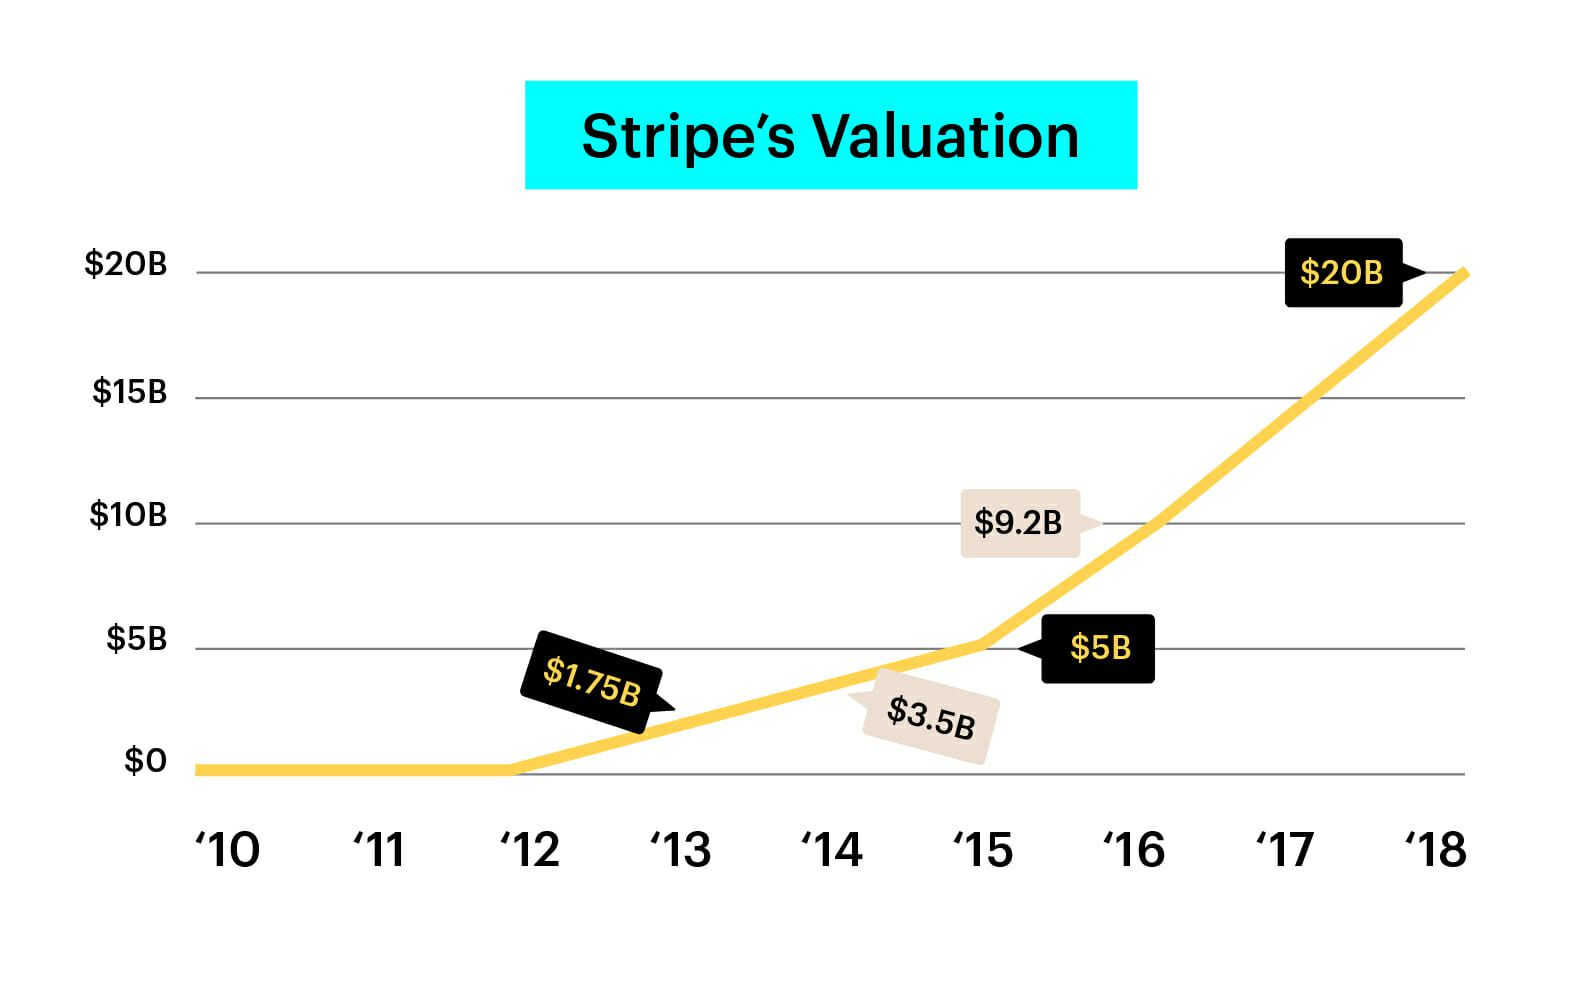 How to build a billion dollar sales team like Stripe